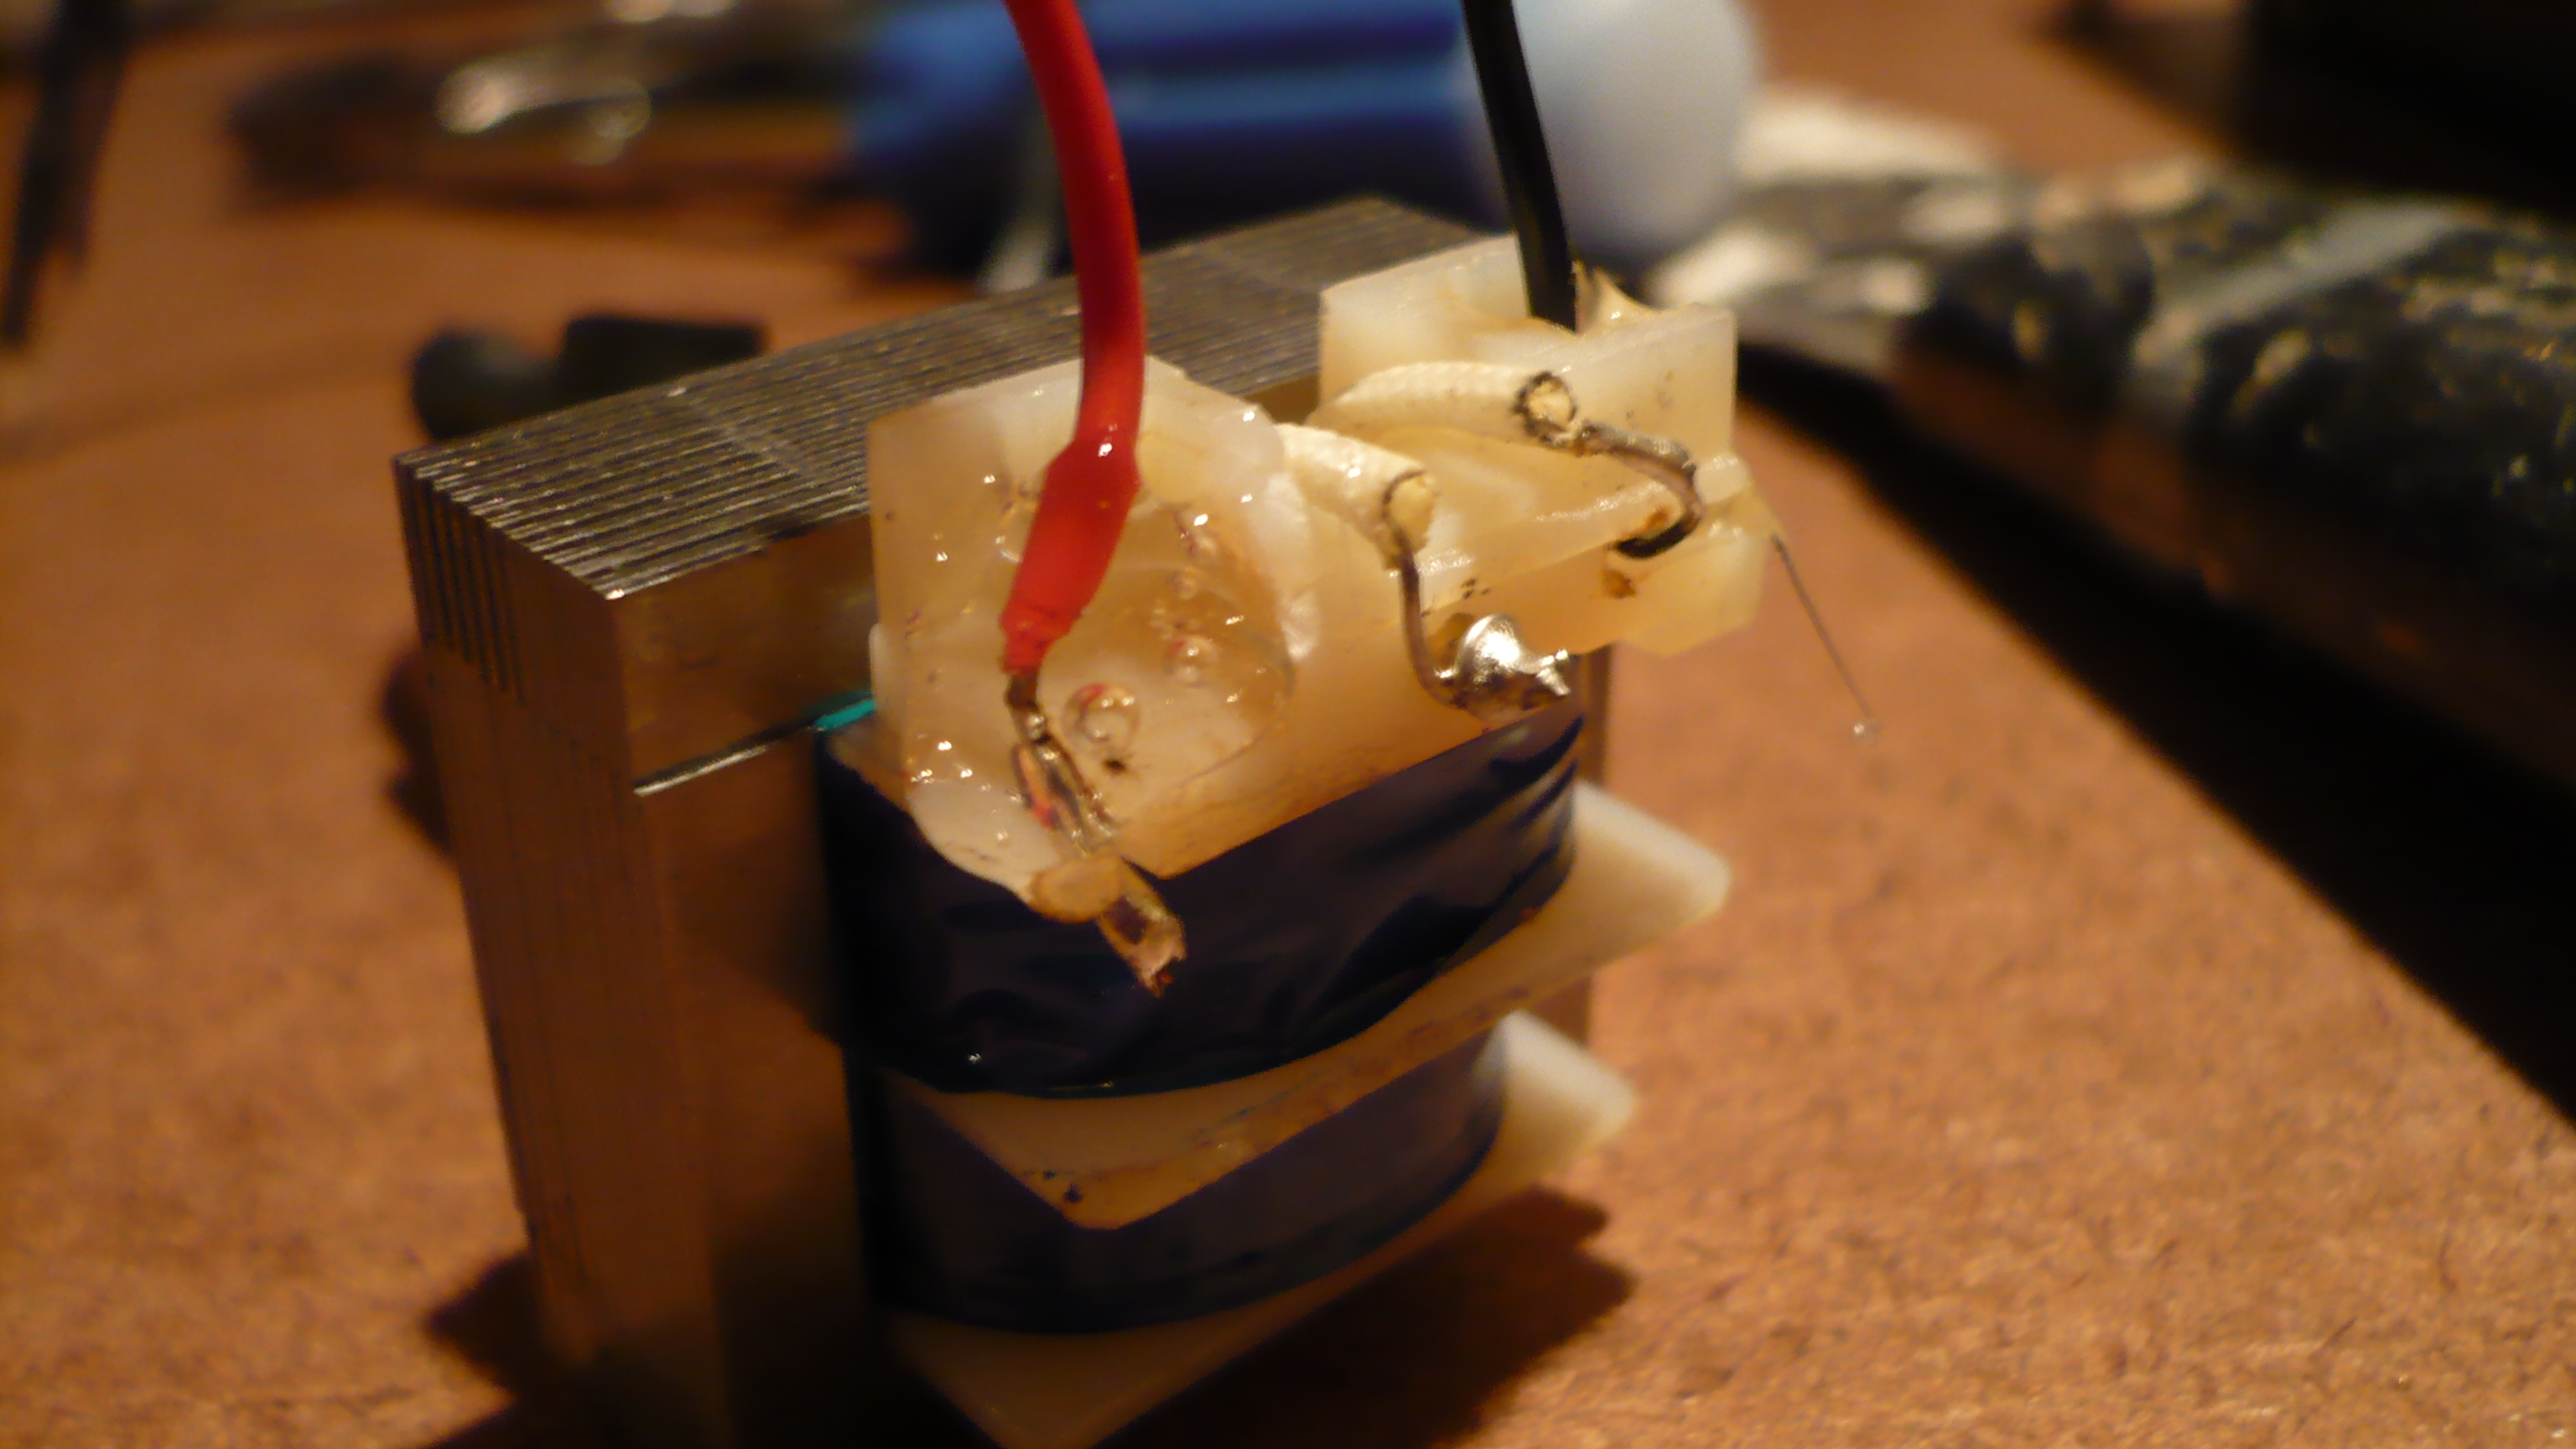 Picture of Assembling the LED/Rectifier Unit